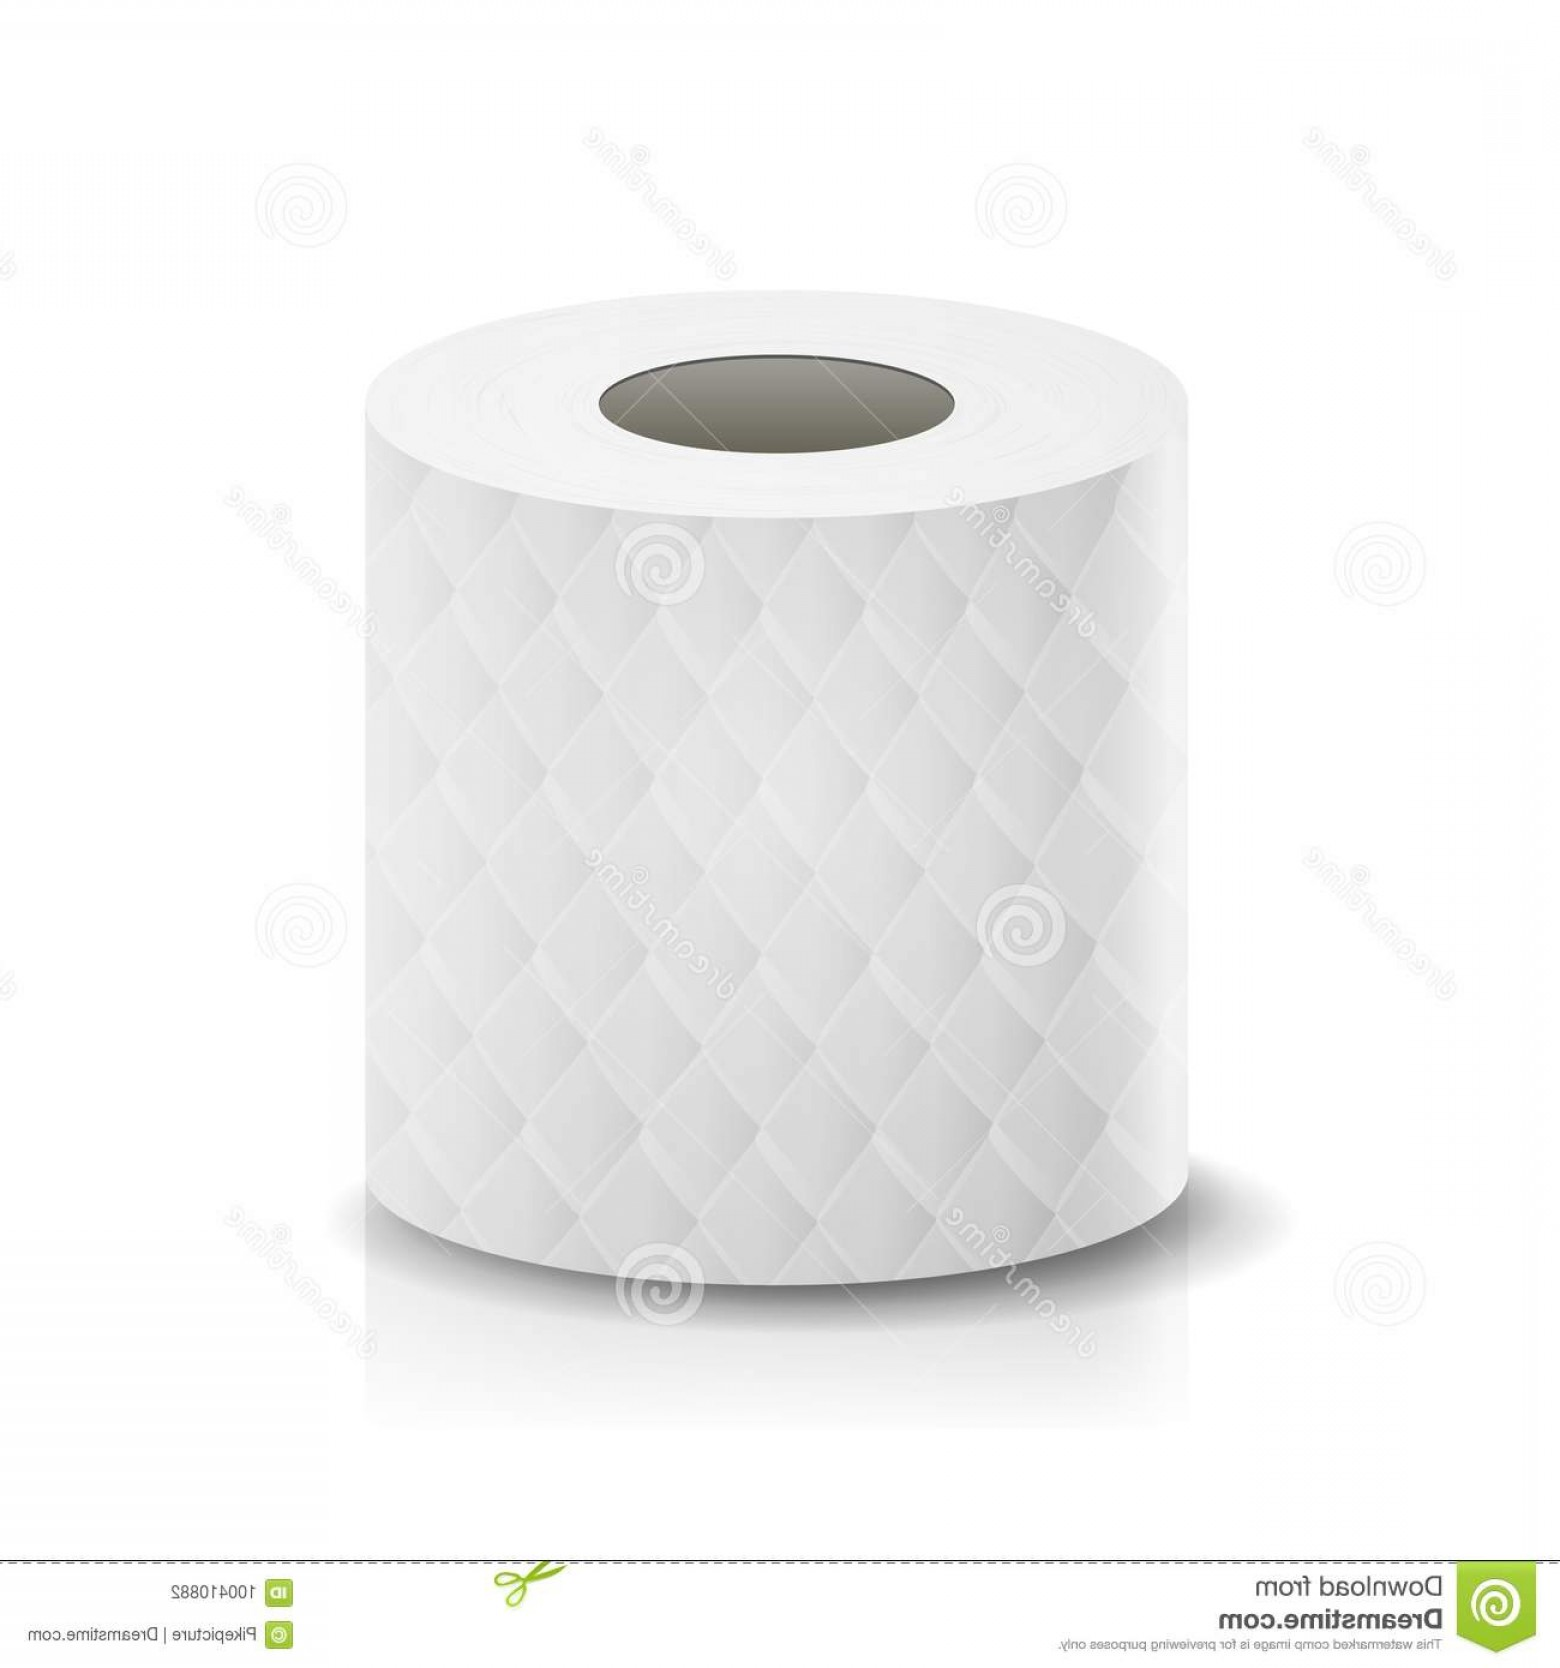 Toilet Paper Vector: Realistic Paper Roll Vector Template Blank White Toilet Paper Roll Mock Up Cash Register Tape Thermal Fax Roll Template Isolated Image